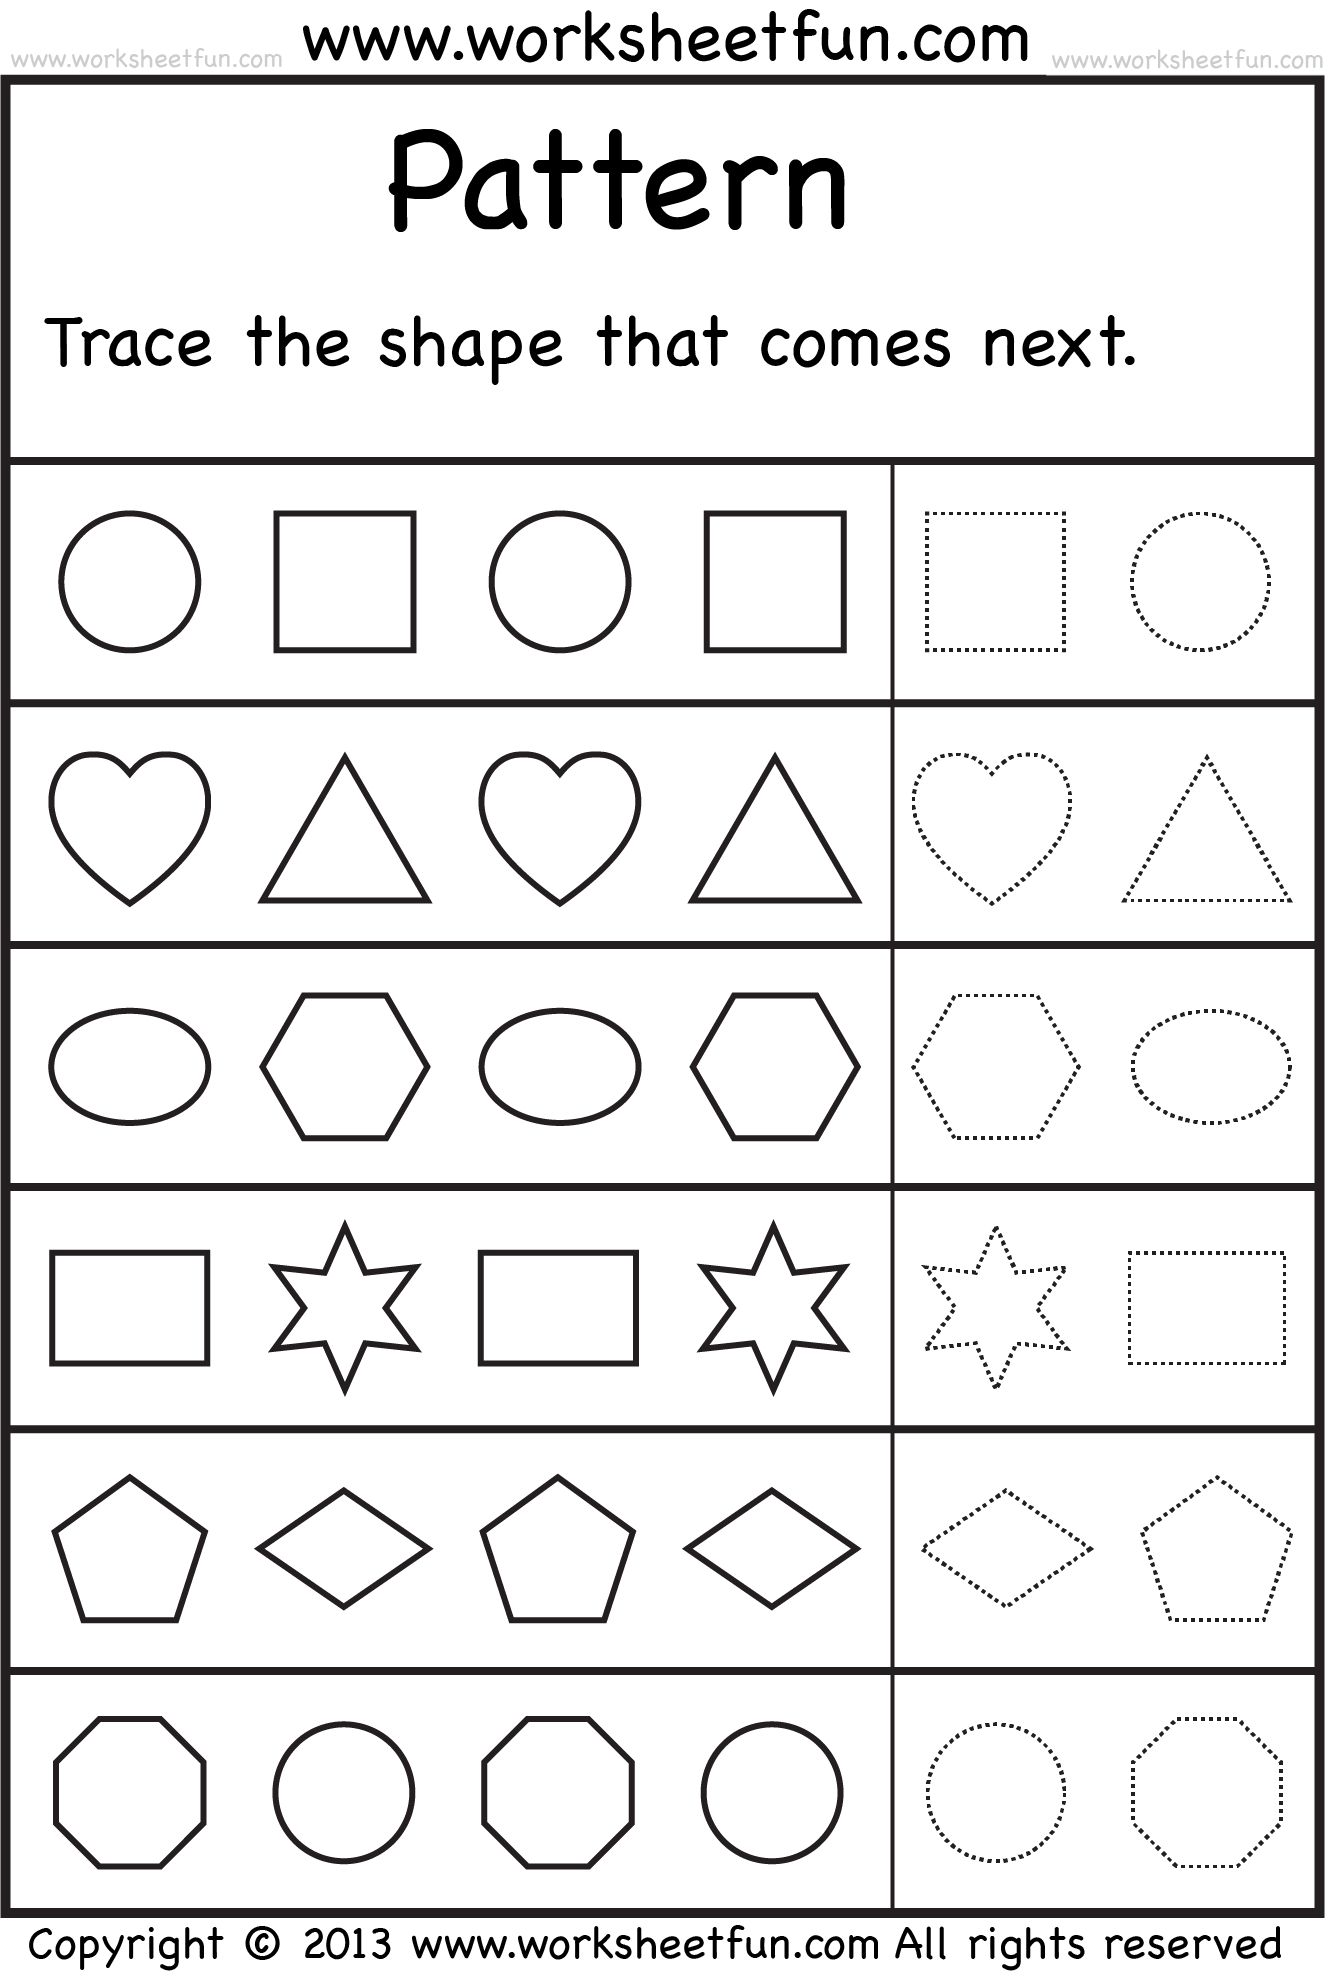 patterns trace the shape that comes next 2 worksheets free printable worksheets worksheetfun. Black Bedroom Furniture Sets. Home Design Ideas